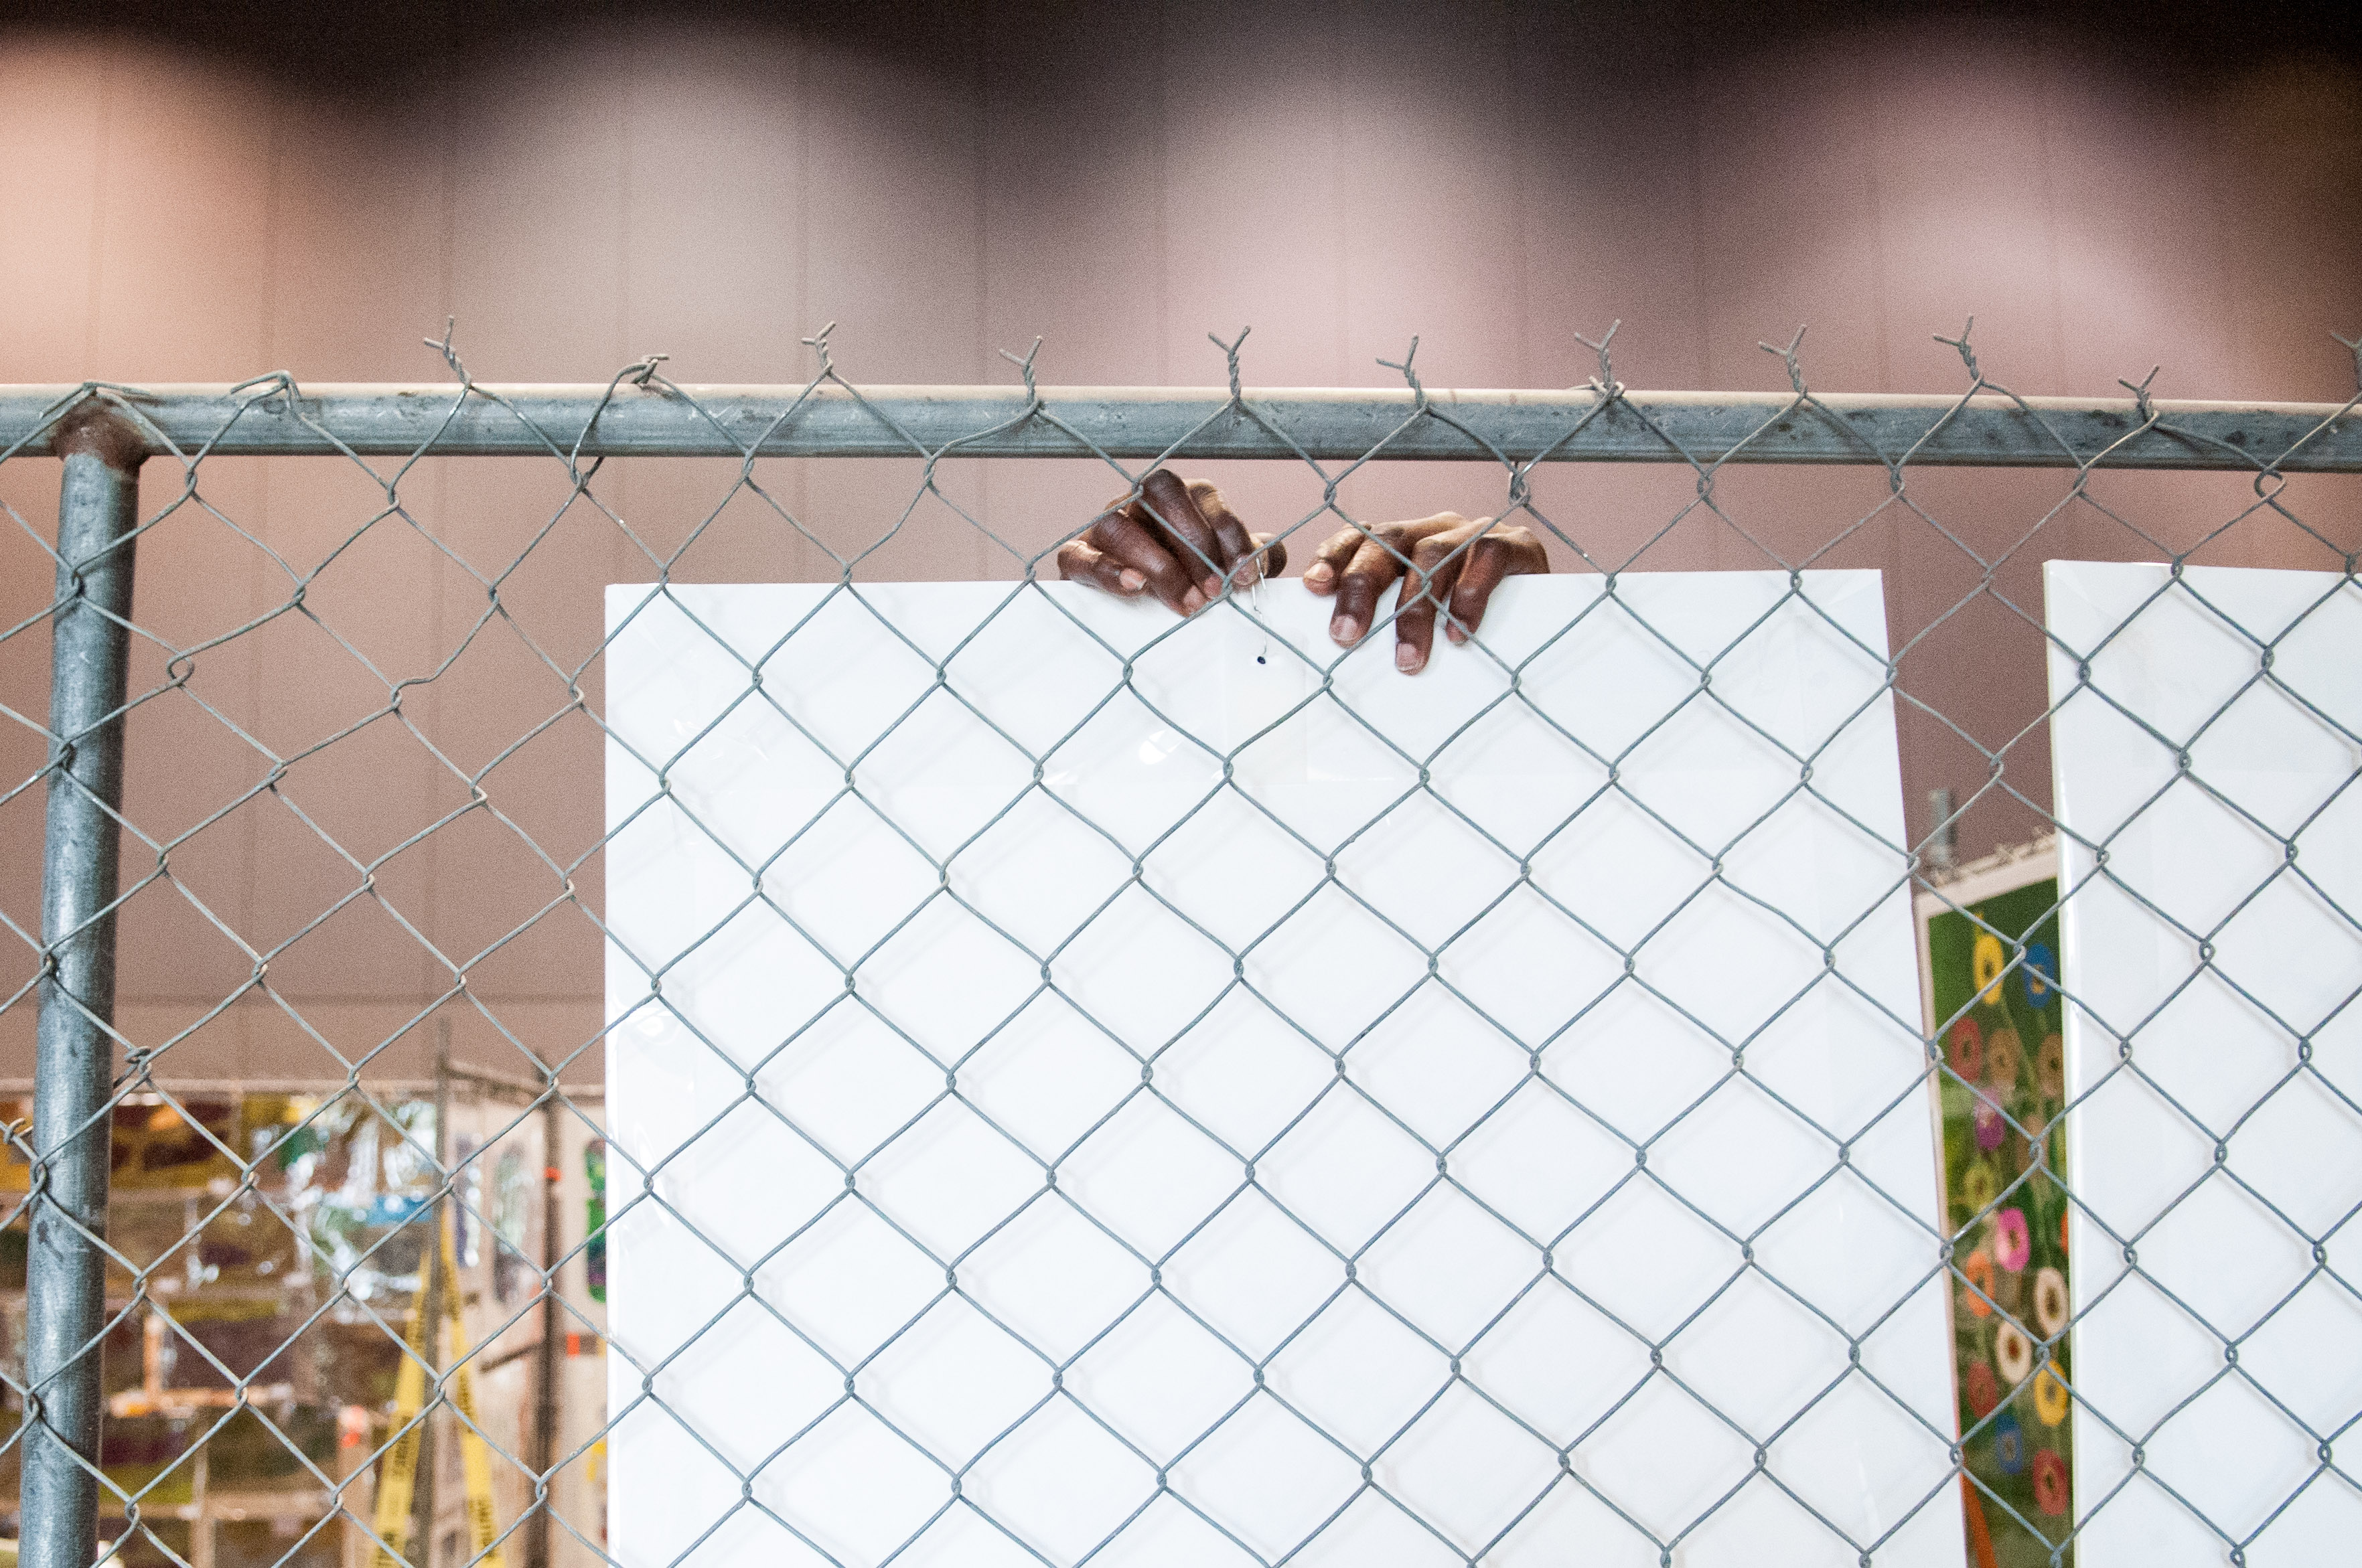 An artist hangs his art pieces at the Austin Convention Center. Photo by Skylar Isdale